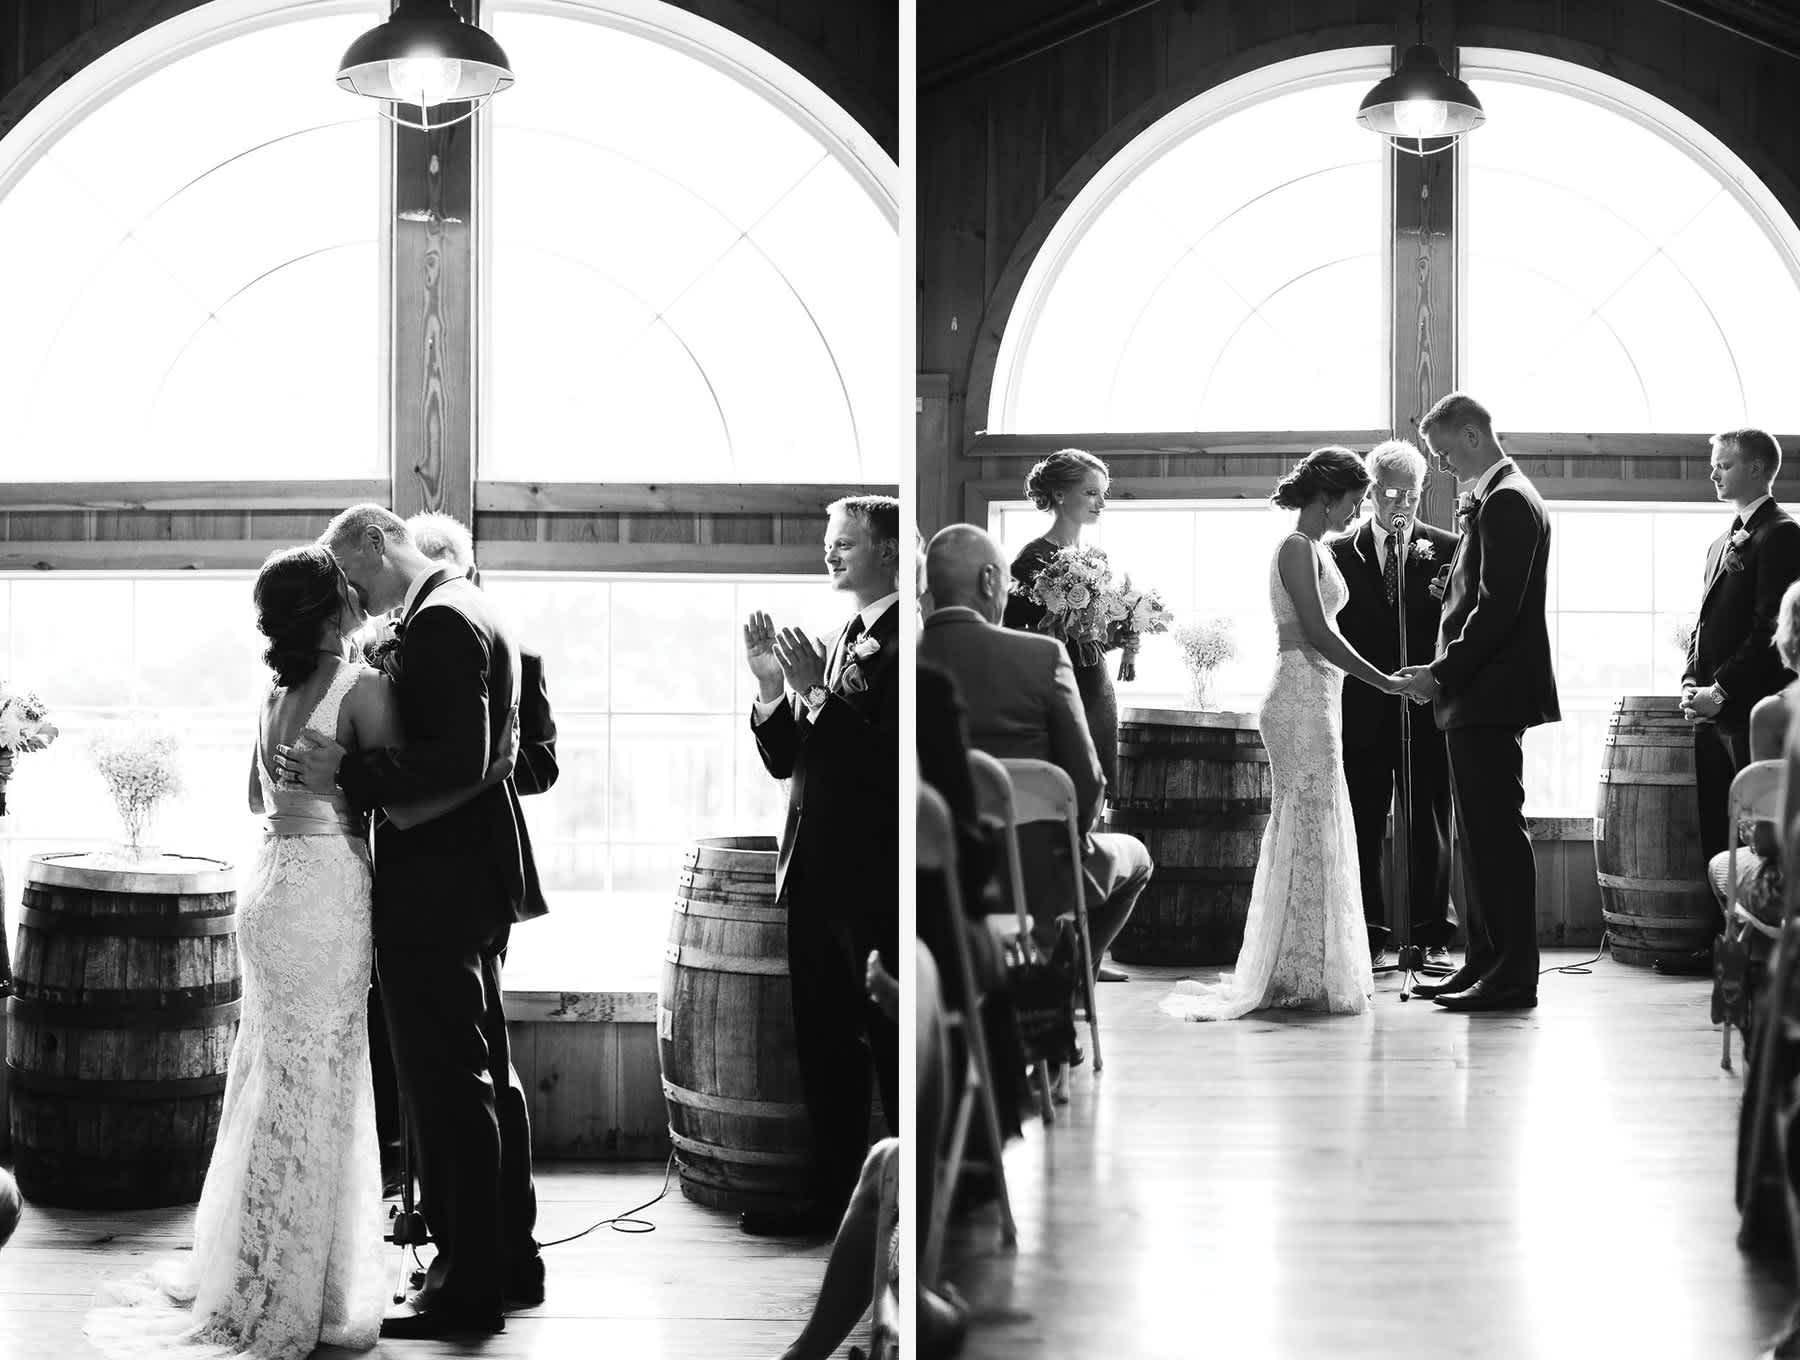 first-kiss-wedding-ceremony-pennsylvania-rosebank-winery